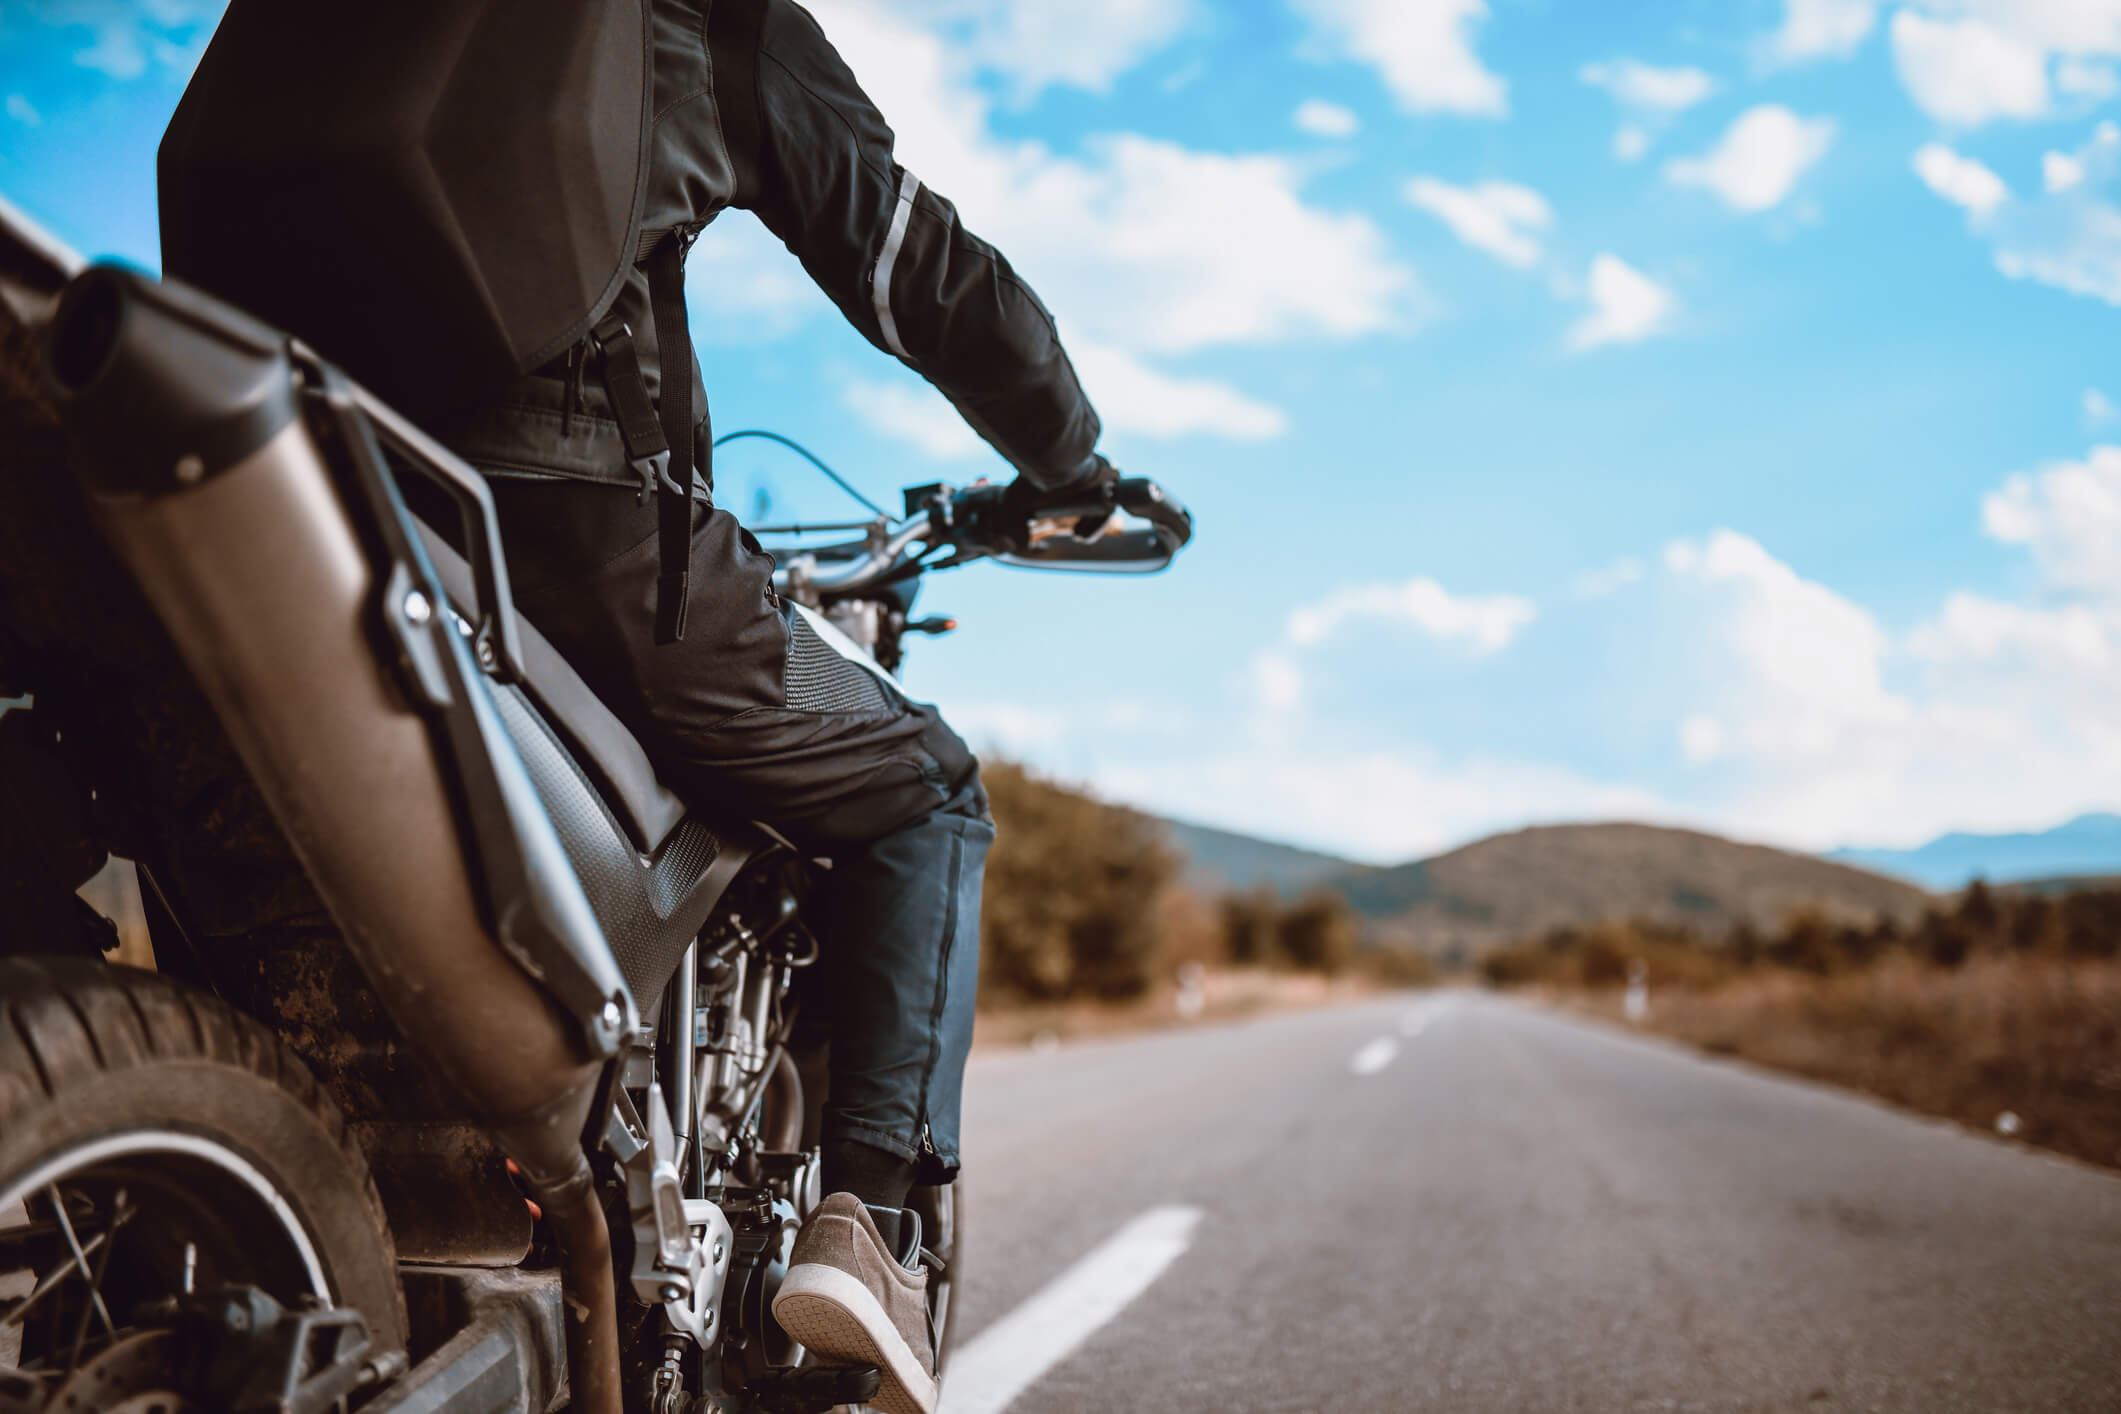 My.Attorney discusses the best ways to keep motorcyclists safe on Florida roads.